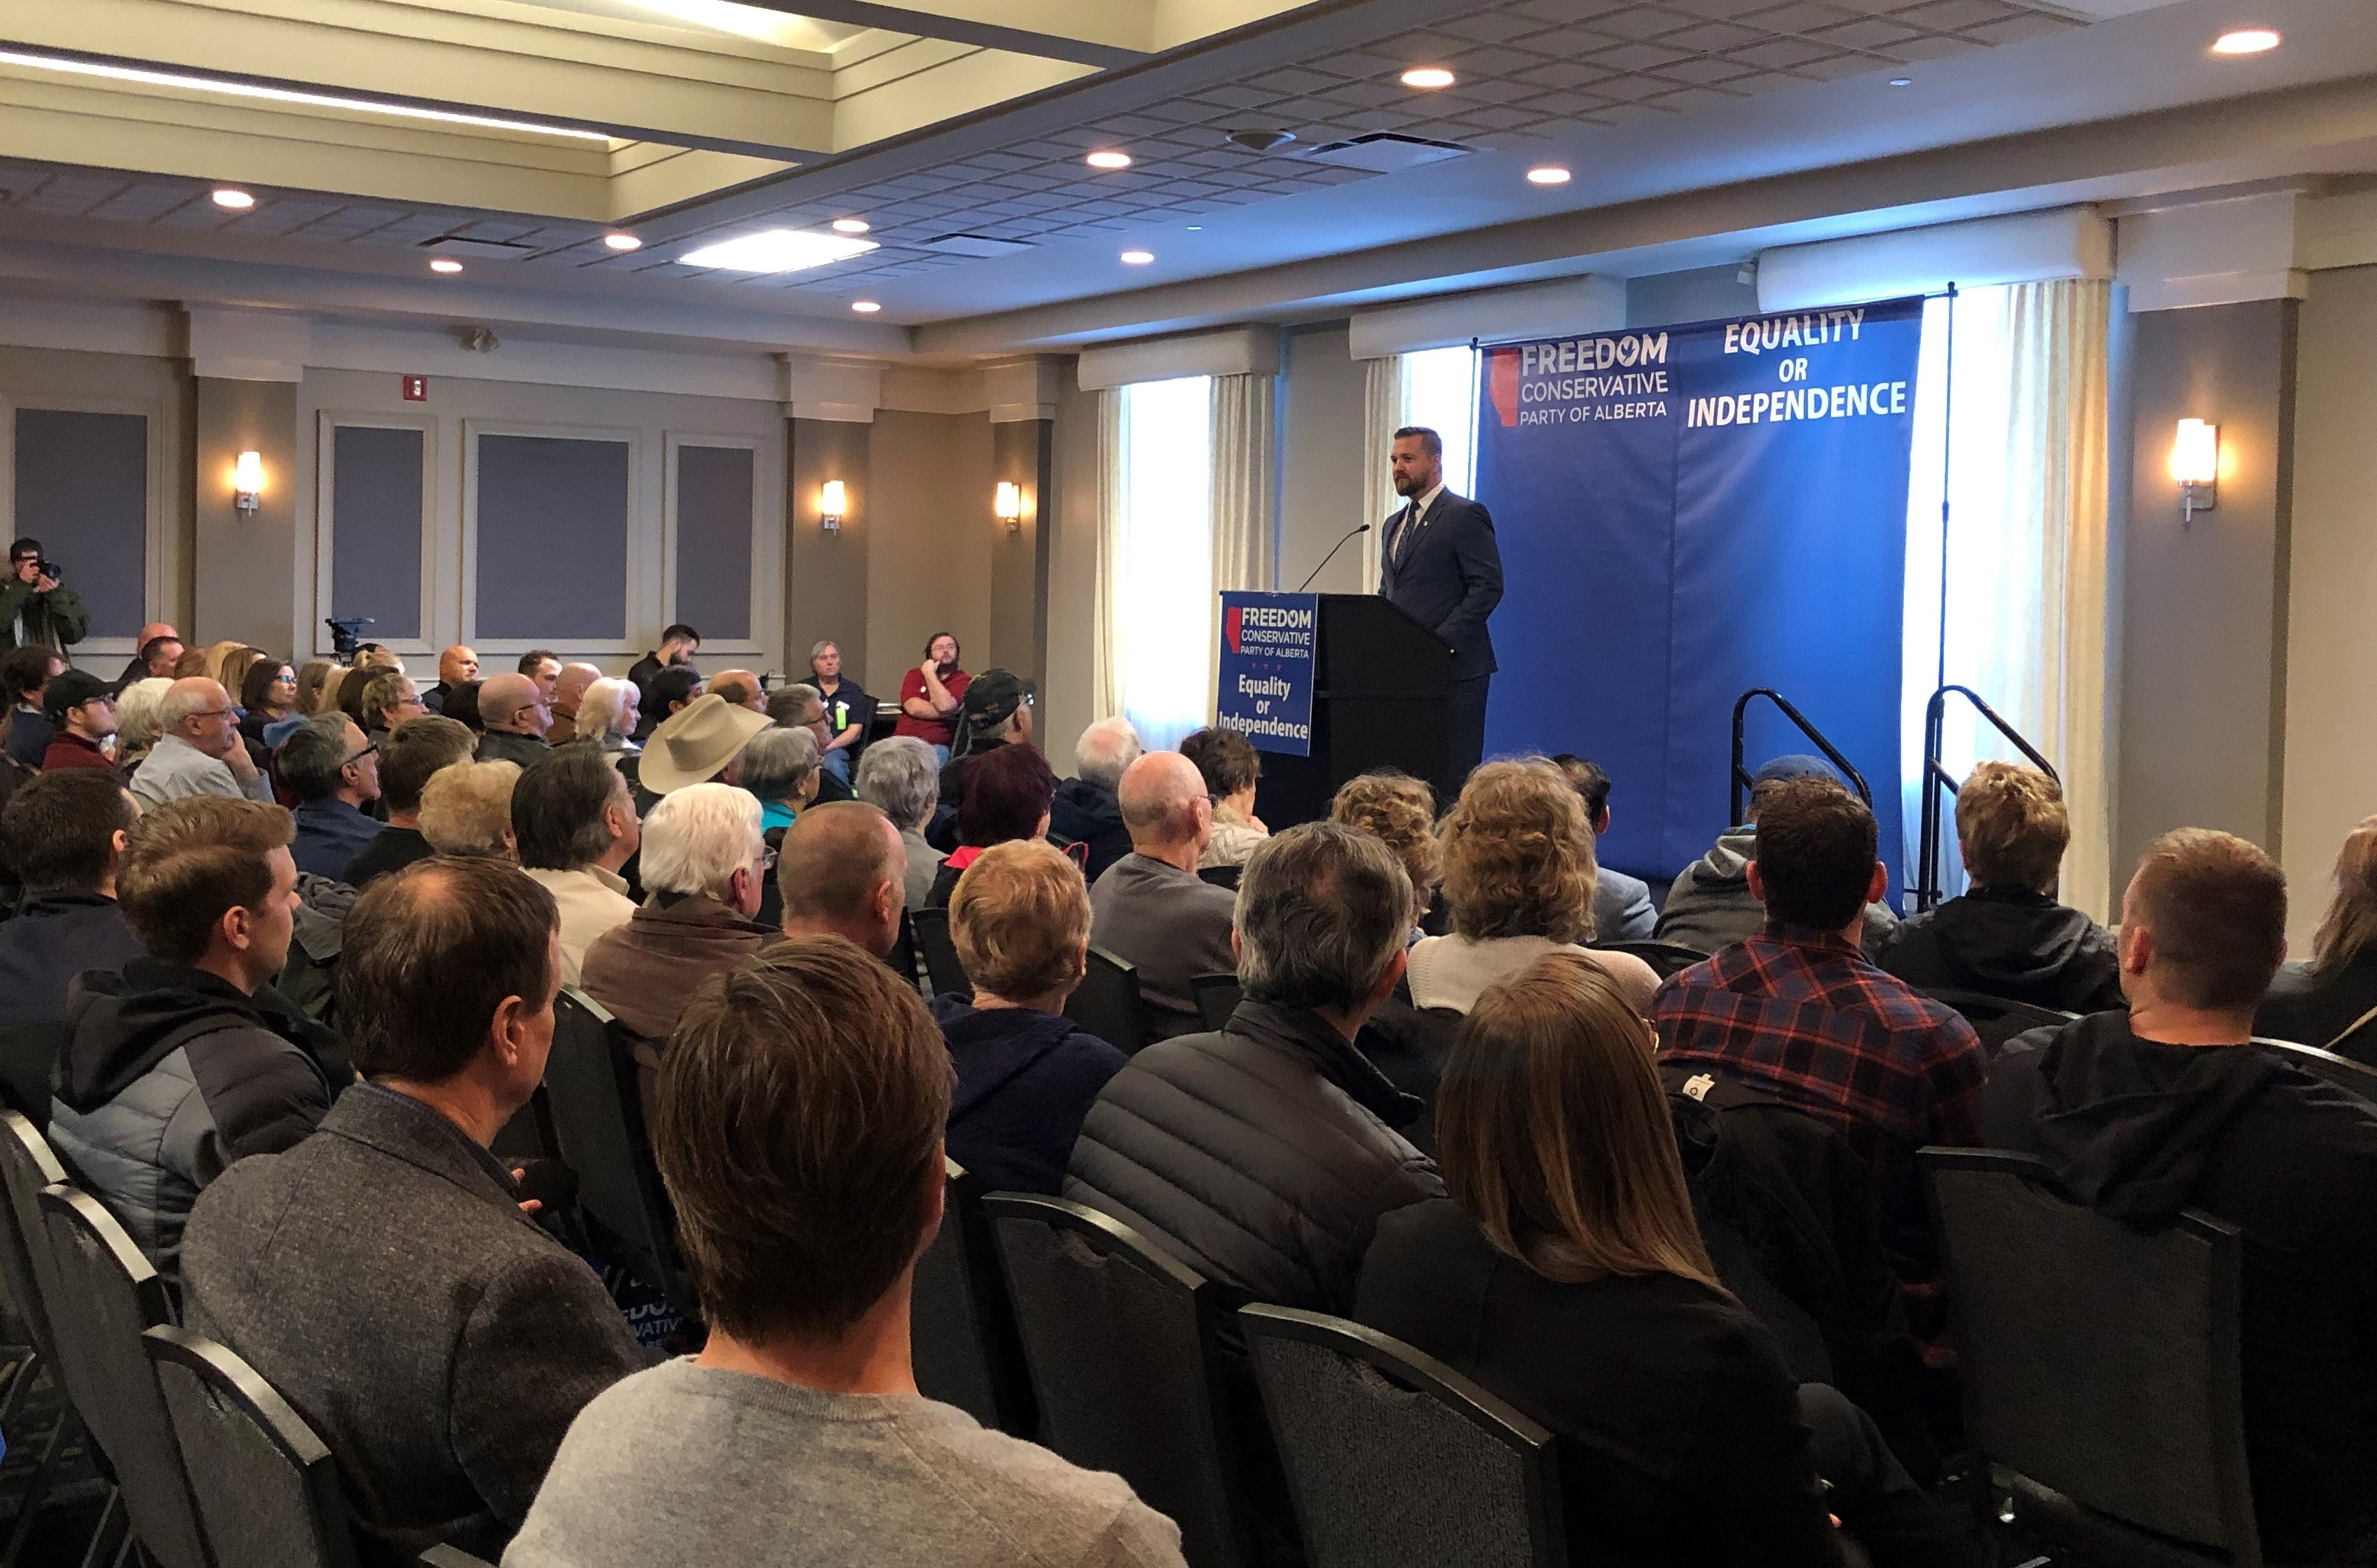 OPINION: Fildebrandt on Equality or Independence